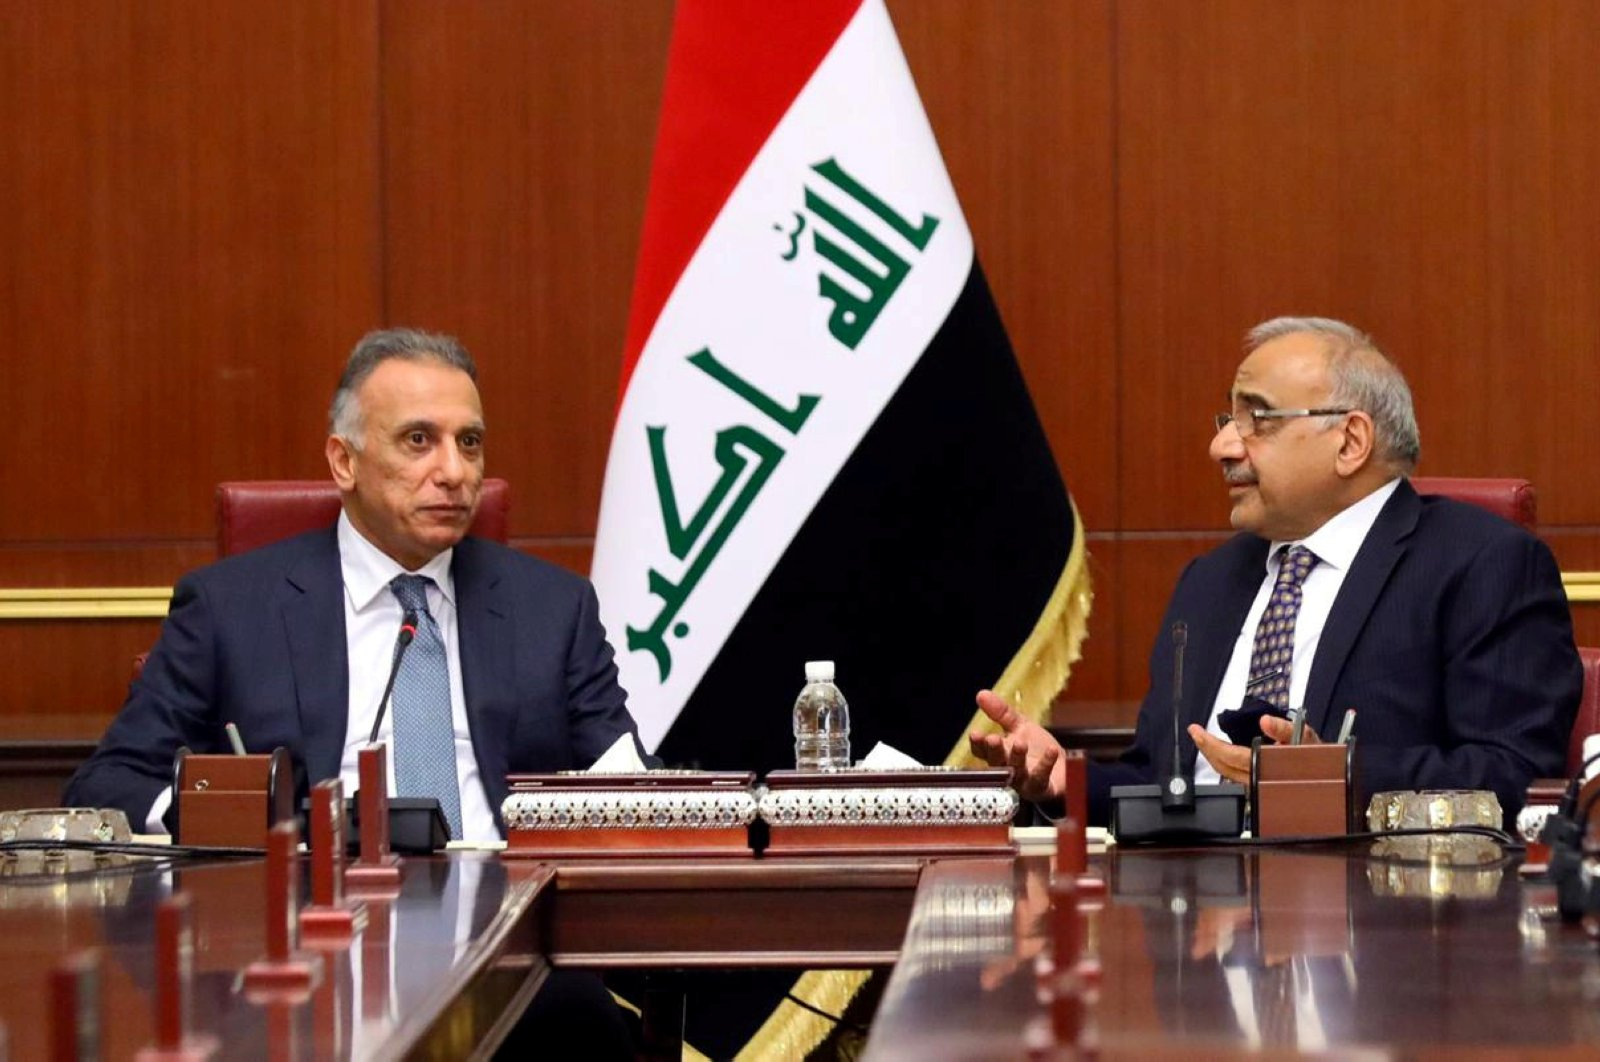 Iraq's new Prime Minister Mustafa al-Kadhimi meets with former Iraqi Prime Minister Adil Abdul-Mahdi in Baghdad, Iraq, May 7, 2020. (Reuters Photo)